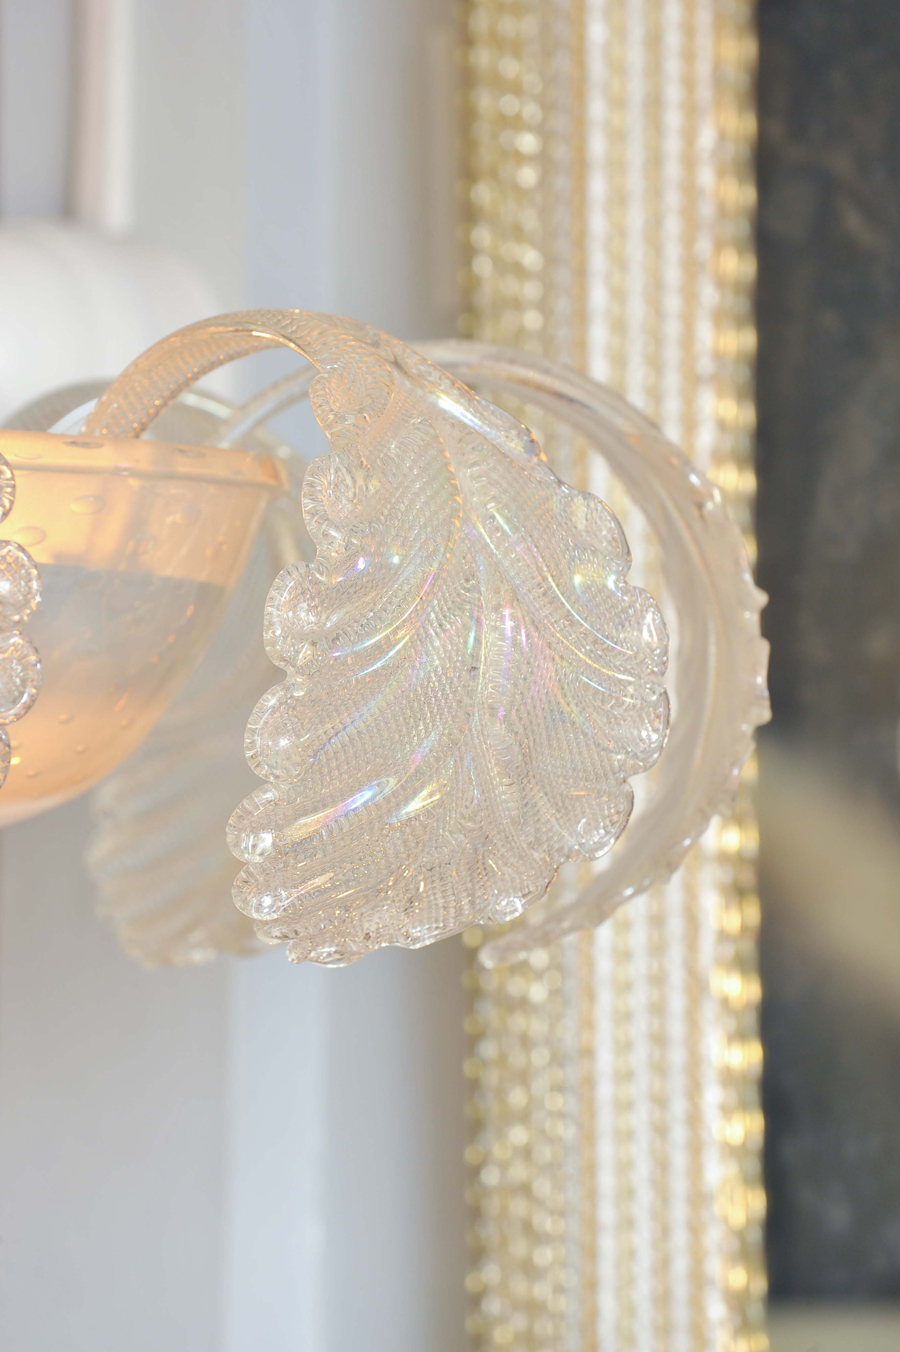 Valerie Wade Lc580 1950S Glass Chandelier Barovier E Toso 05